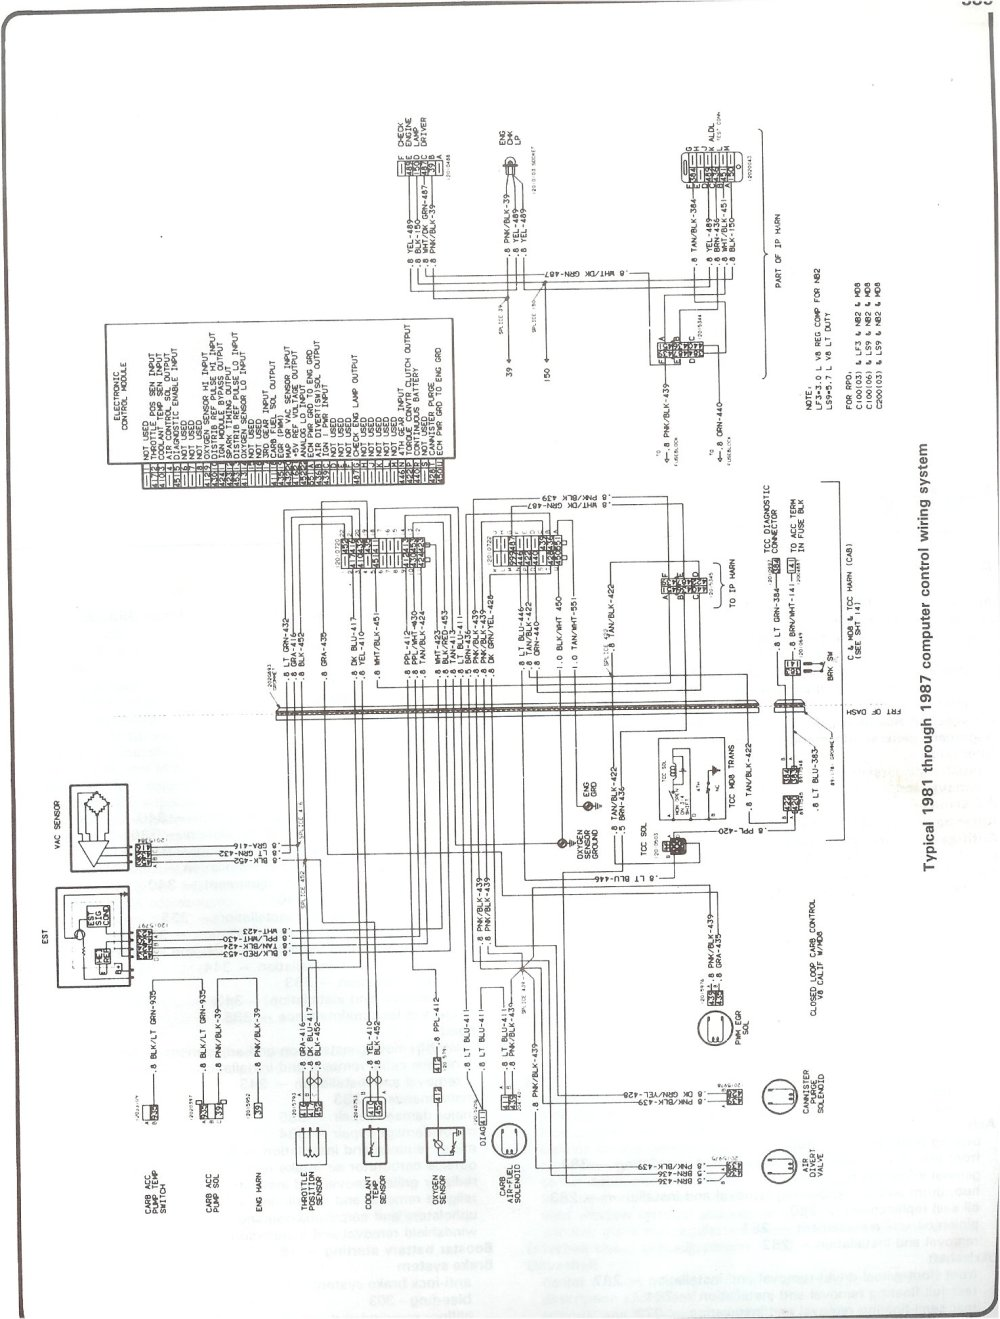 medium resolution of 82 chevy truck wiring harness wiring diagram source wiring harness diagram 4 3 v6 chevy s10 82 c10 engine wiring harness diagram